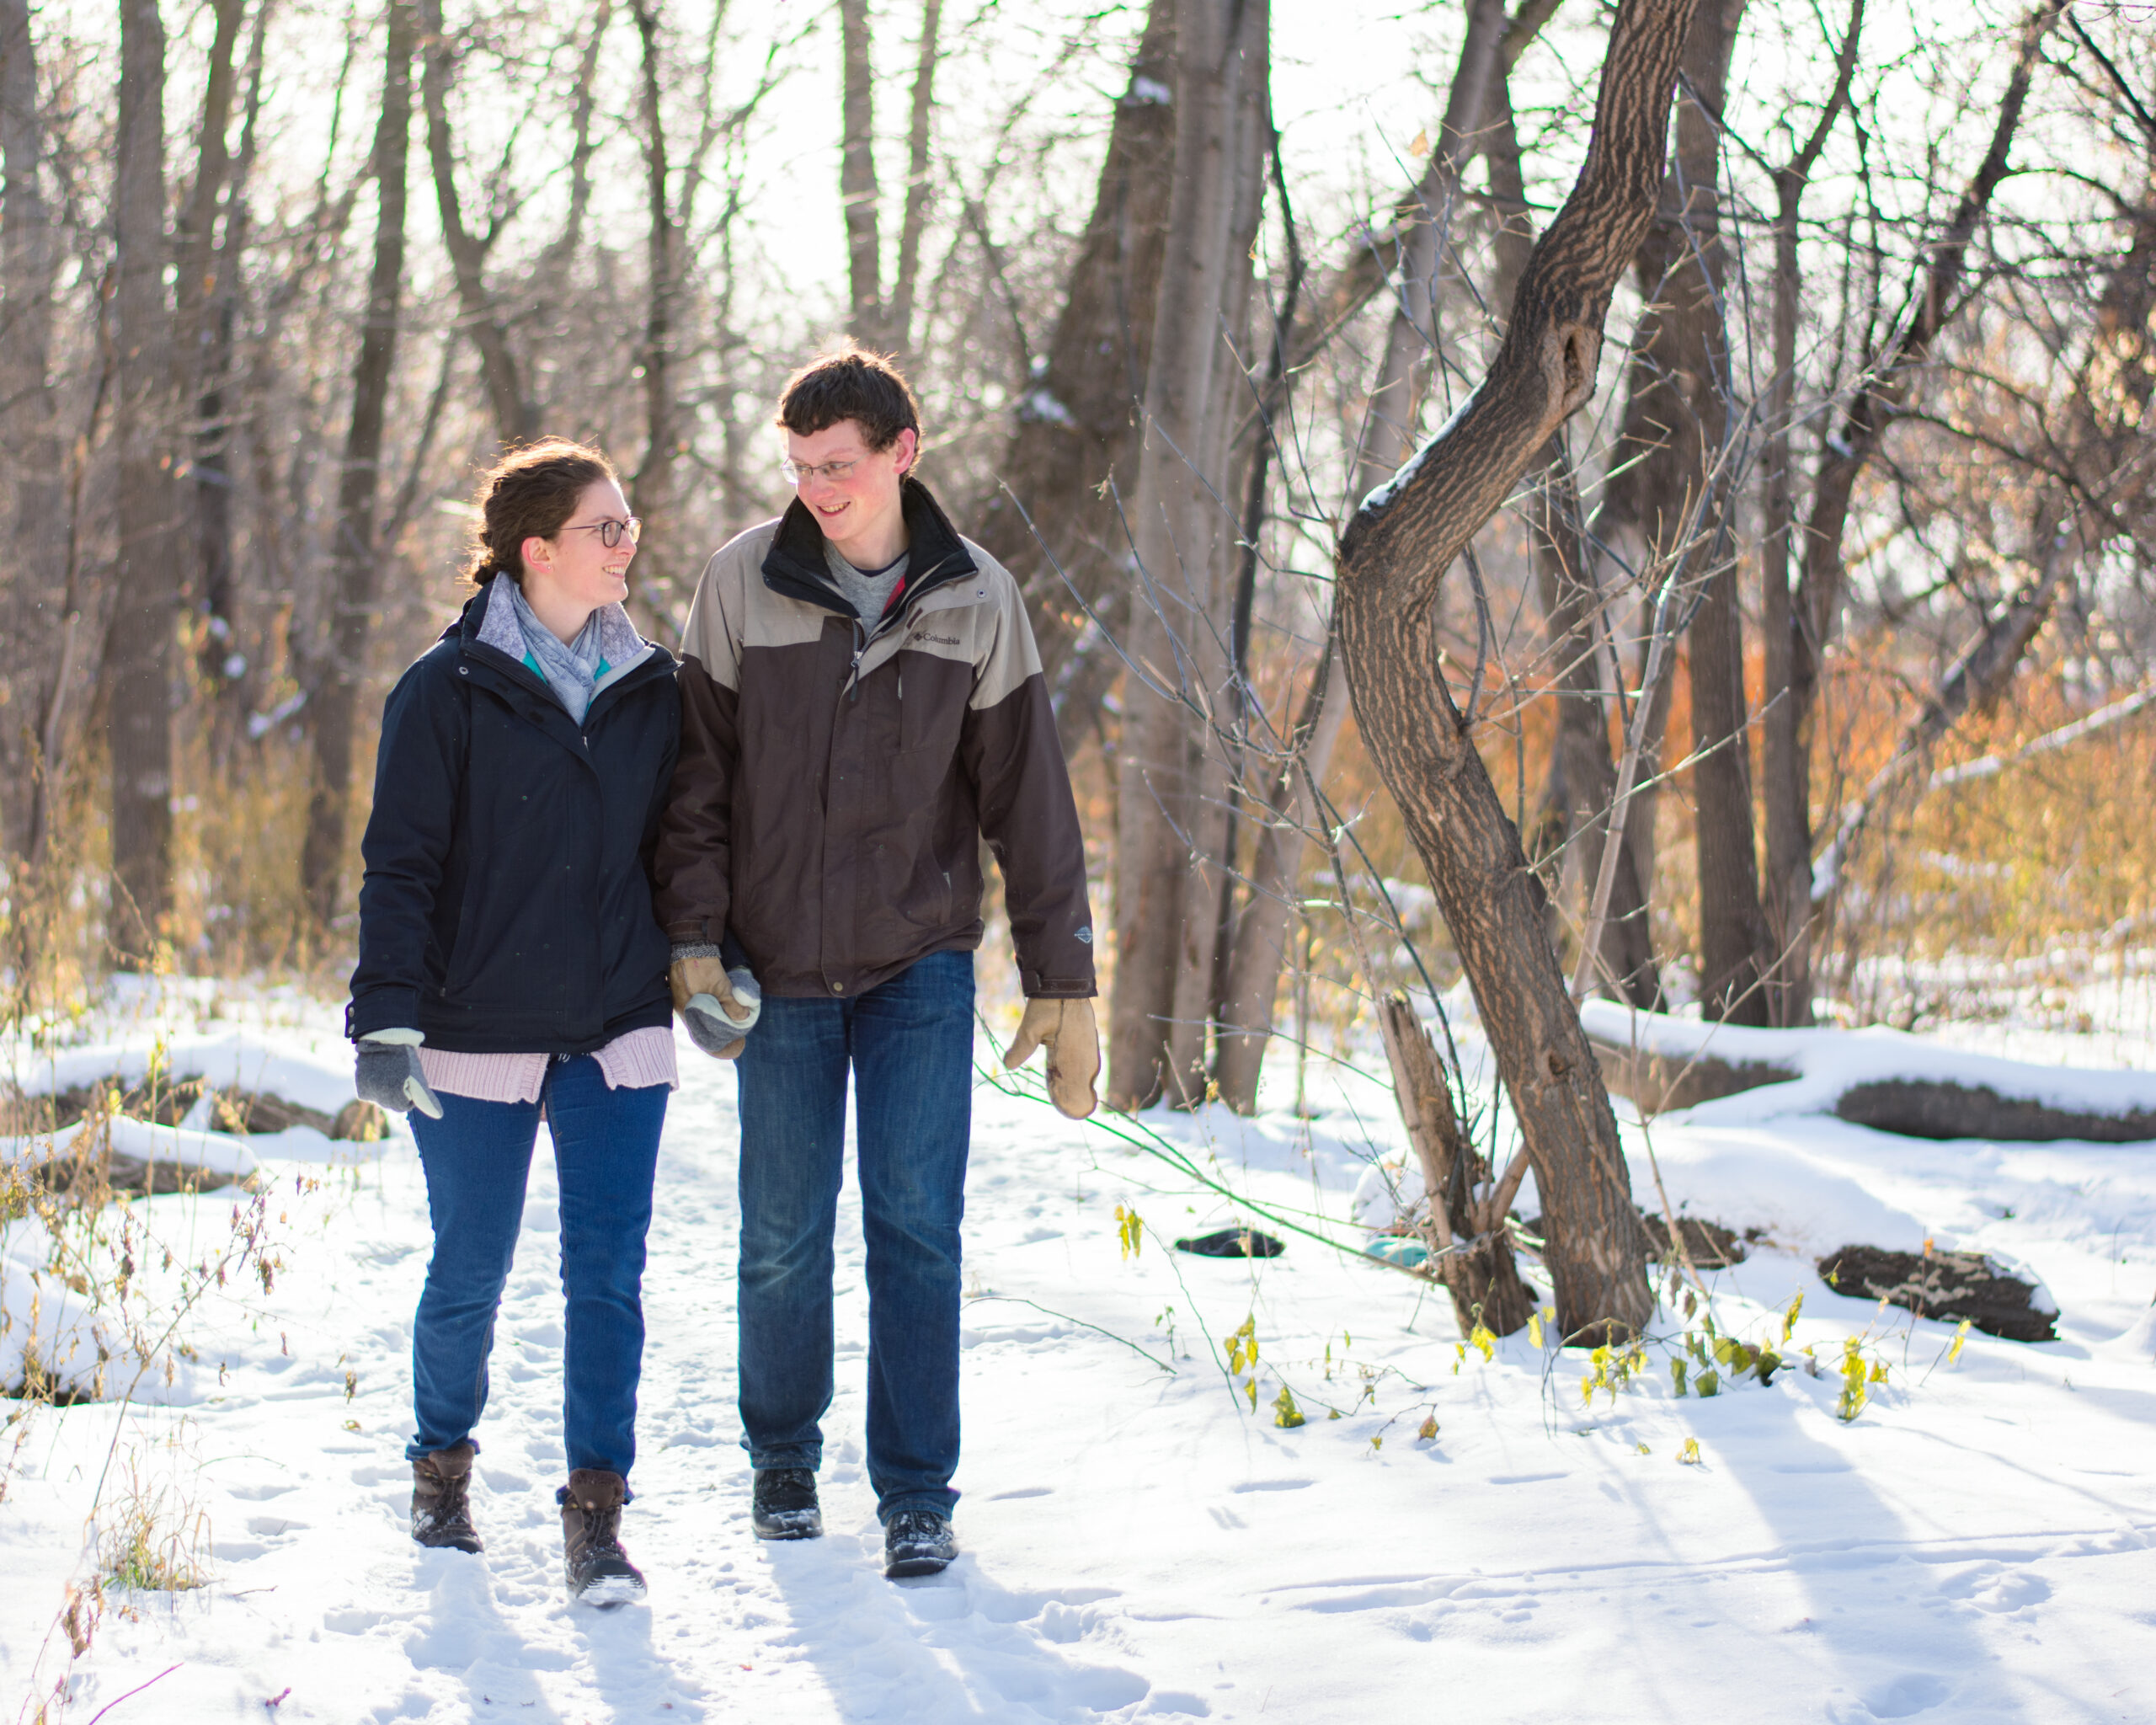 DSC 0132 scaled - Best Places to Take Engagement Photos in Fargo North Dakota